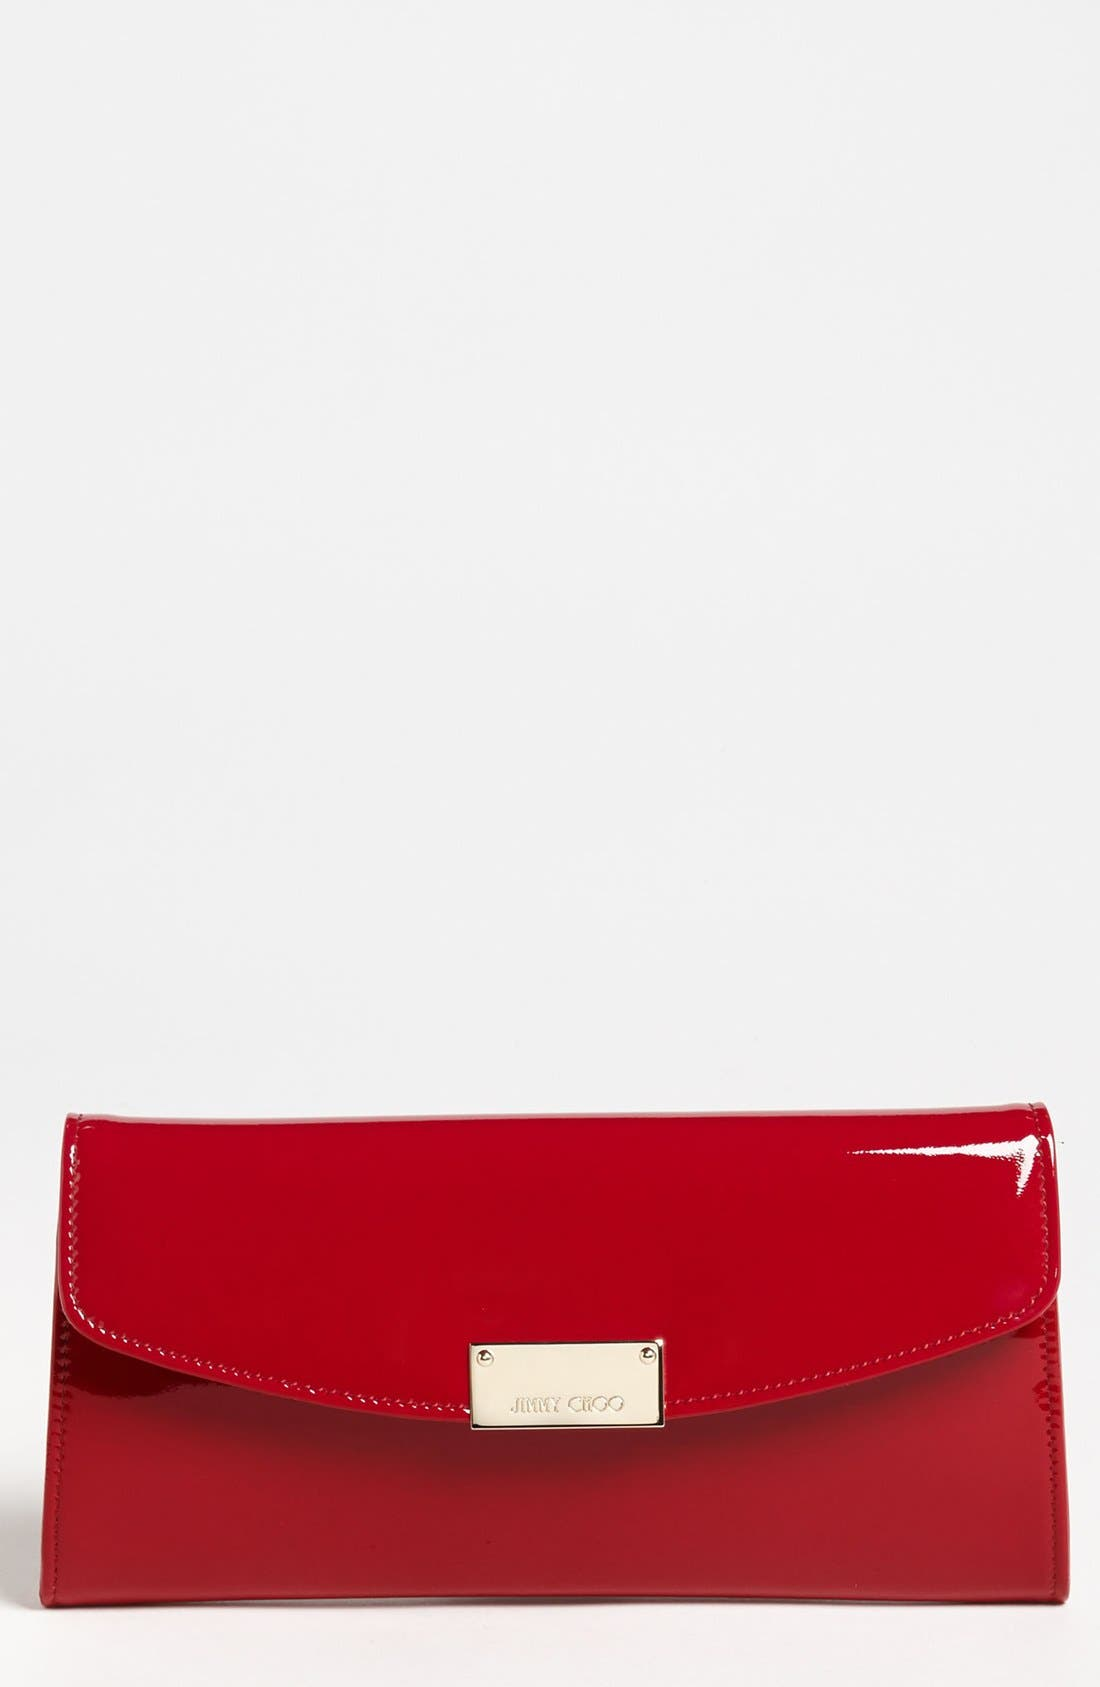 Alternate Image 1 Selected - Jimmy Choo 'Riane' Patent Leather Clutch